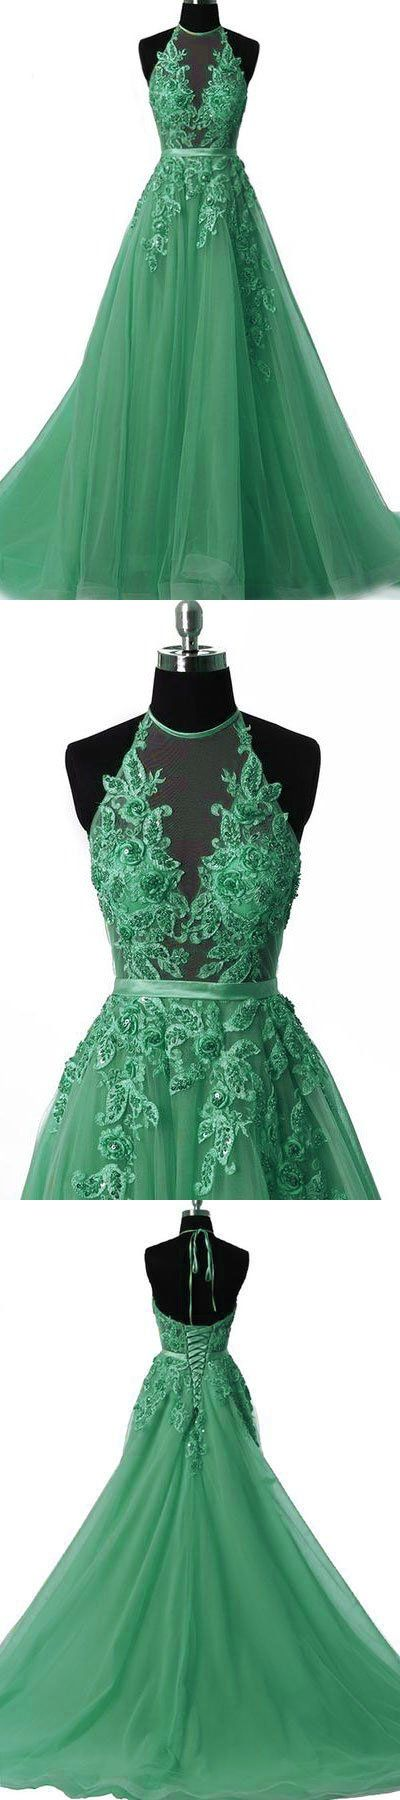 Unique tulle lace applique green long prom dress, green tulle evening dress,Appliques prom dress,Prom Gowns,A-line evening dress